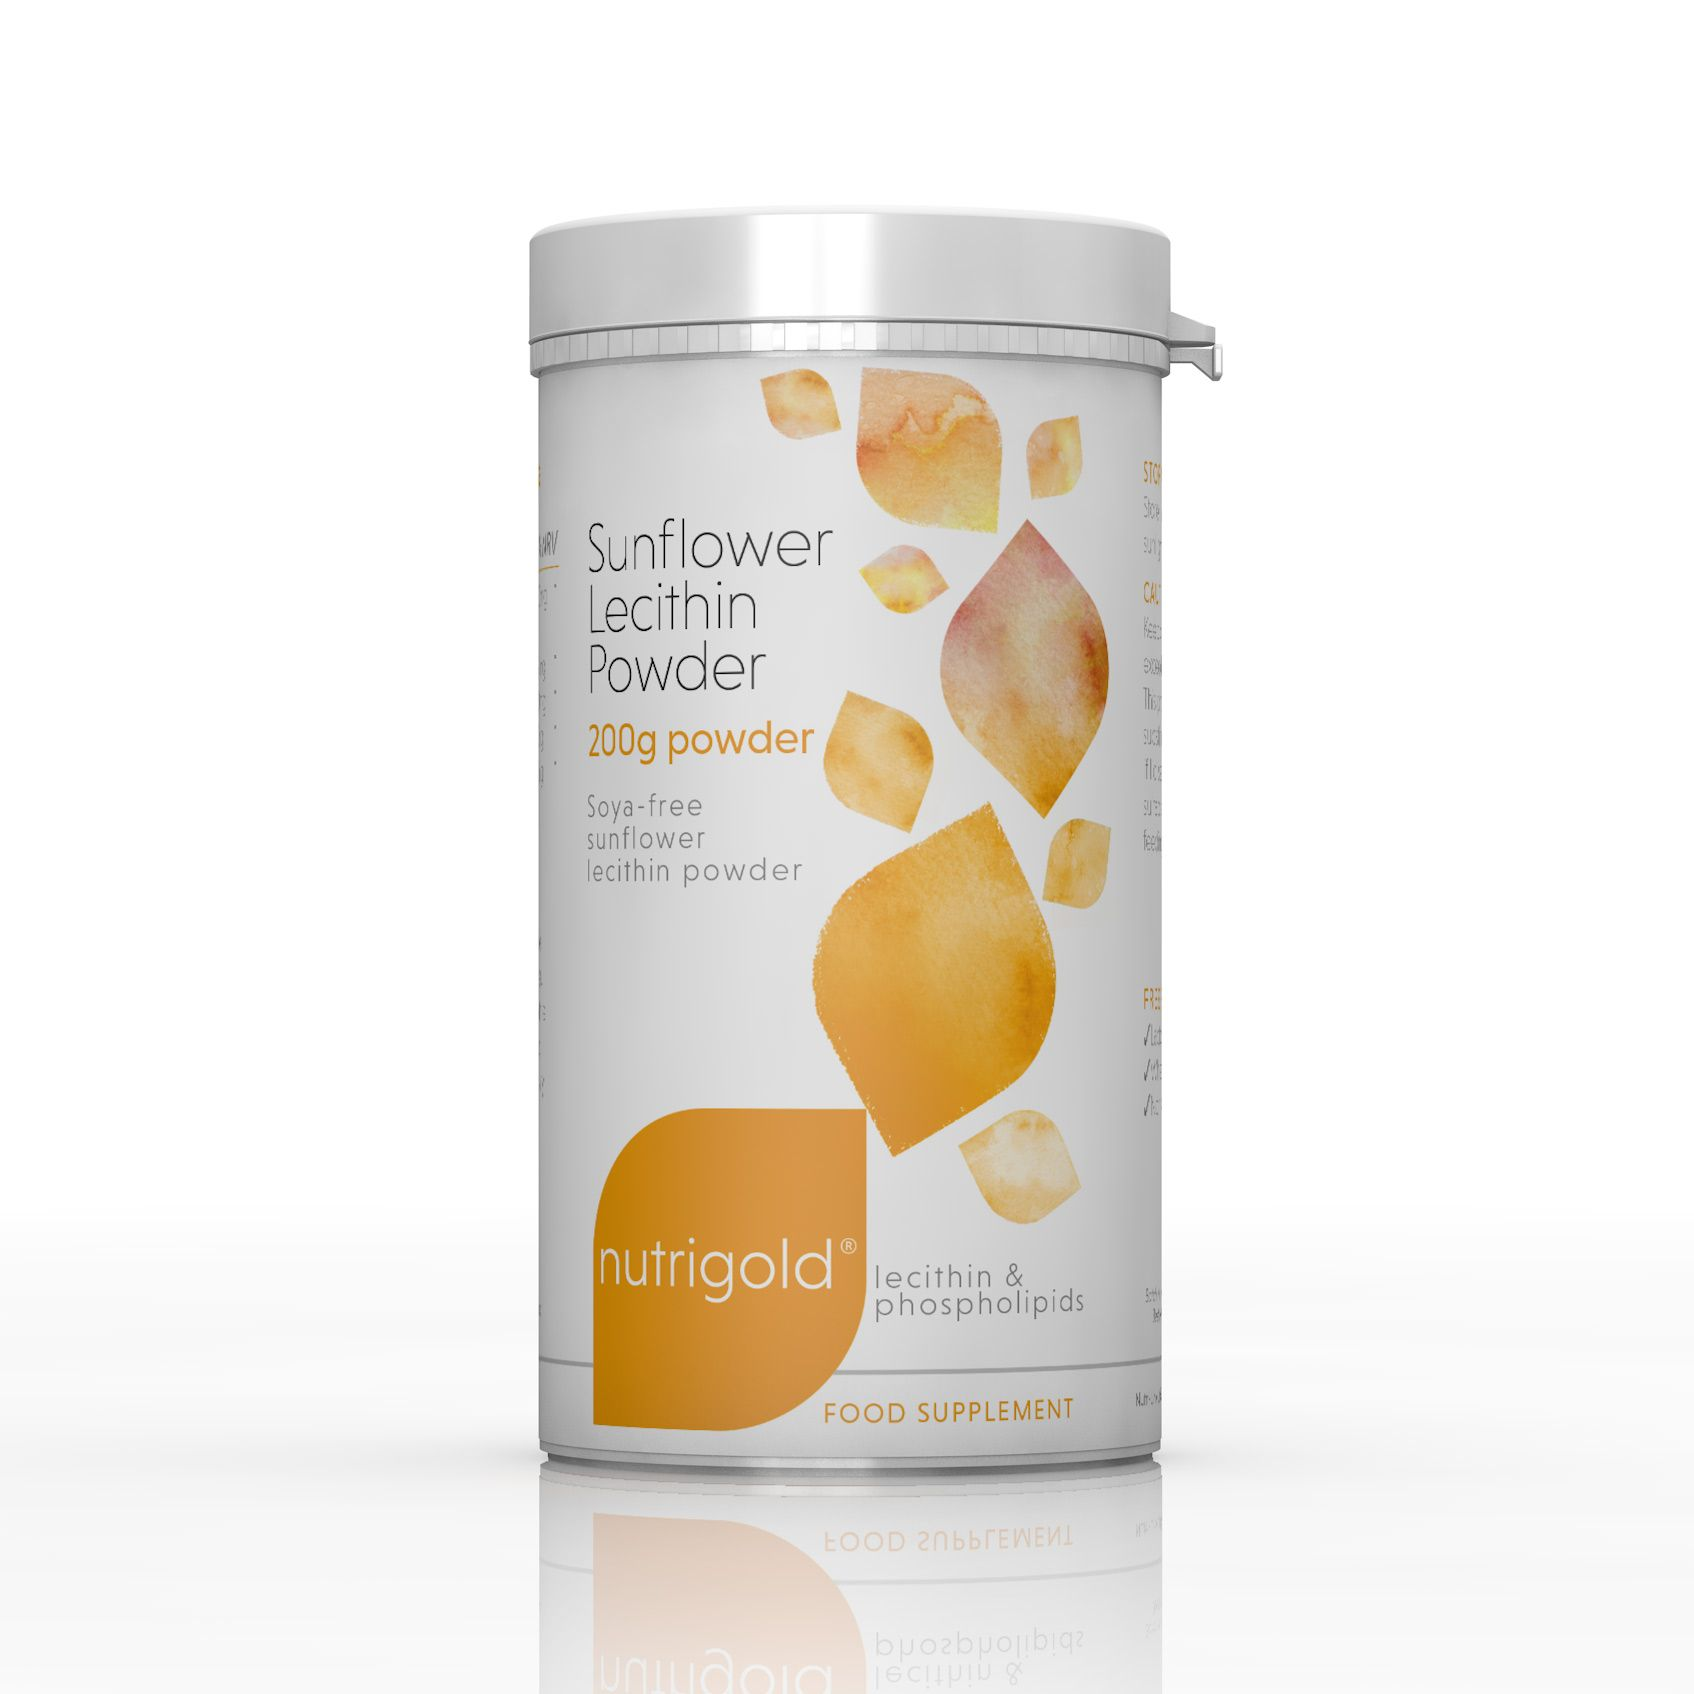 Sunflower Lecithin Powder 200g: The Natural Dispensary